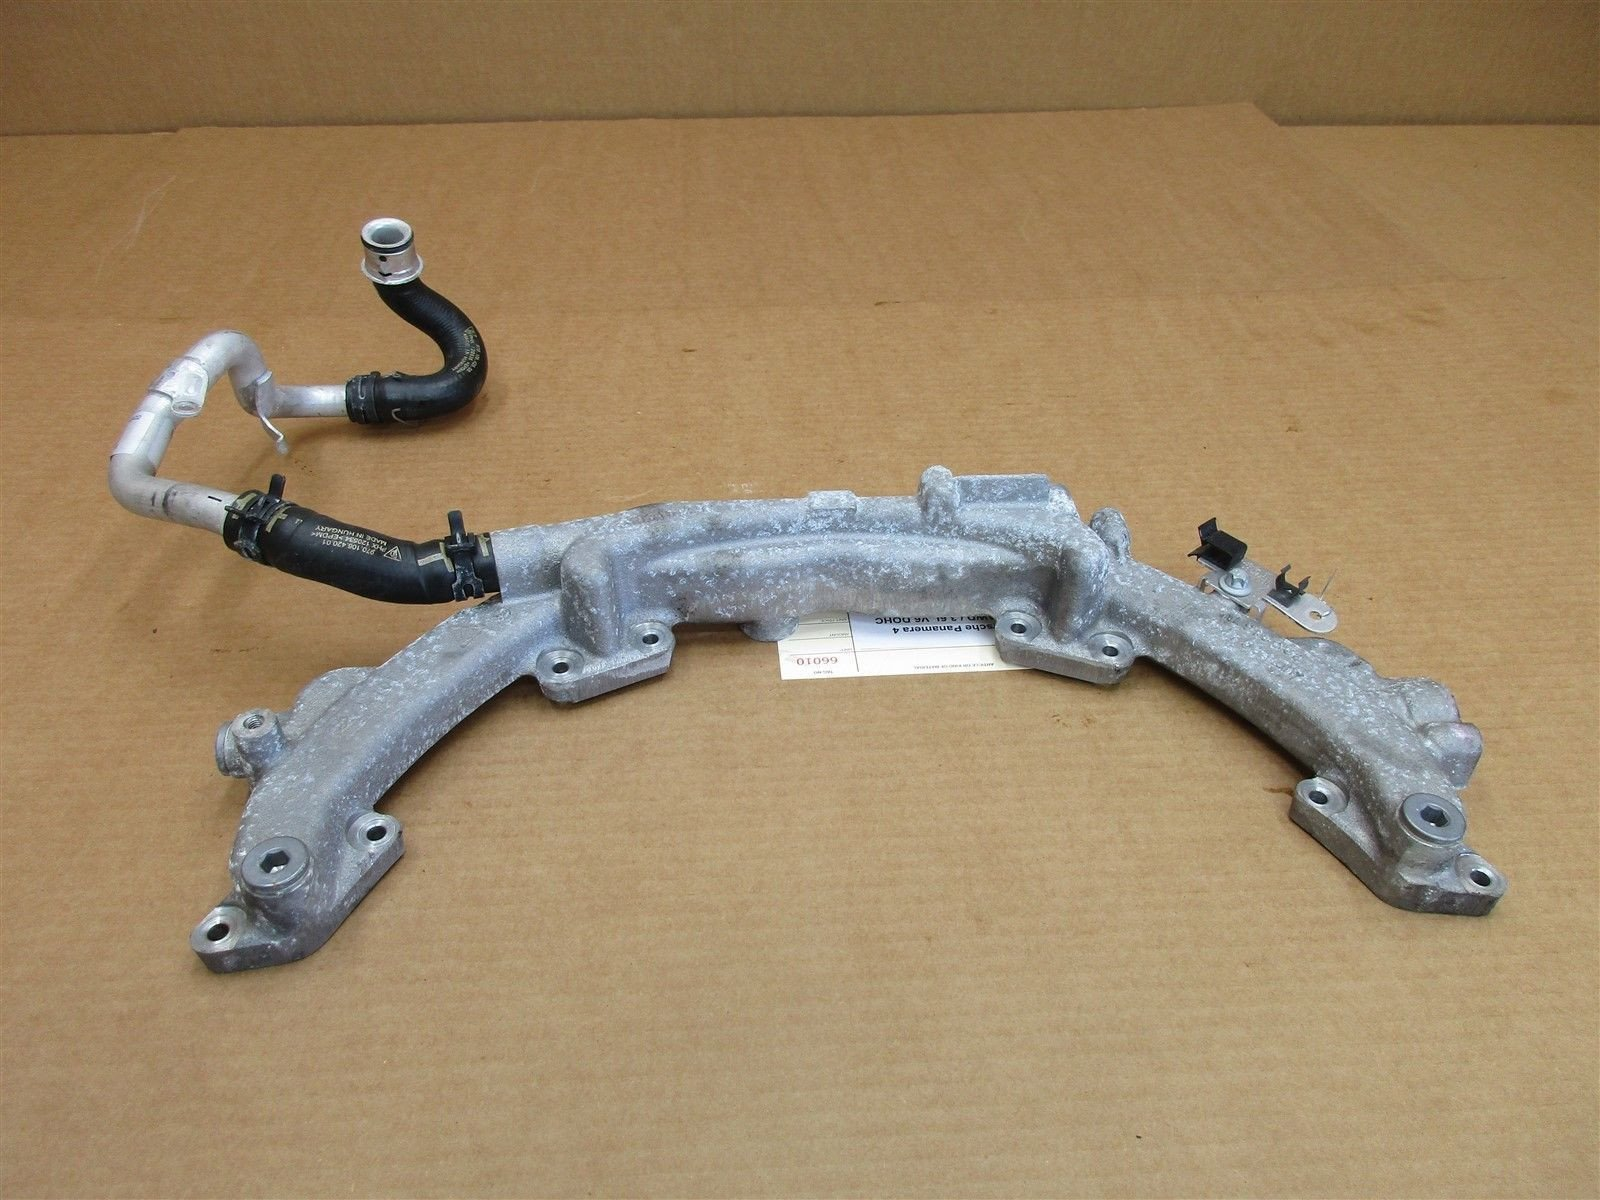 11 Panamera 4 AWD 970 Porsche Engine 3.6 WATER COOLANT PIPE 9481061613R 63,246